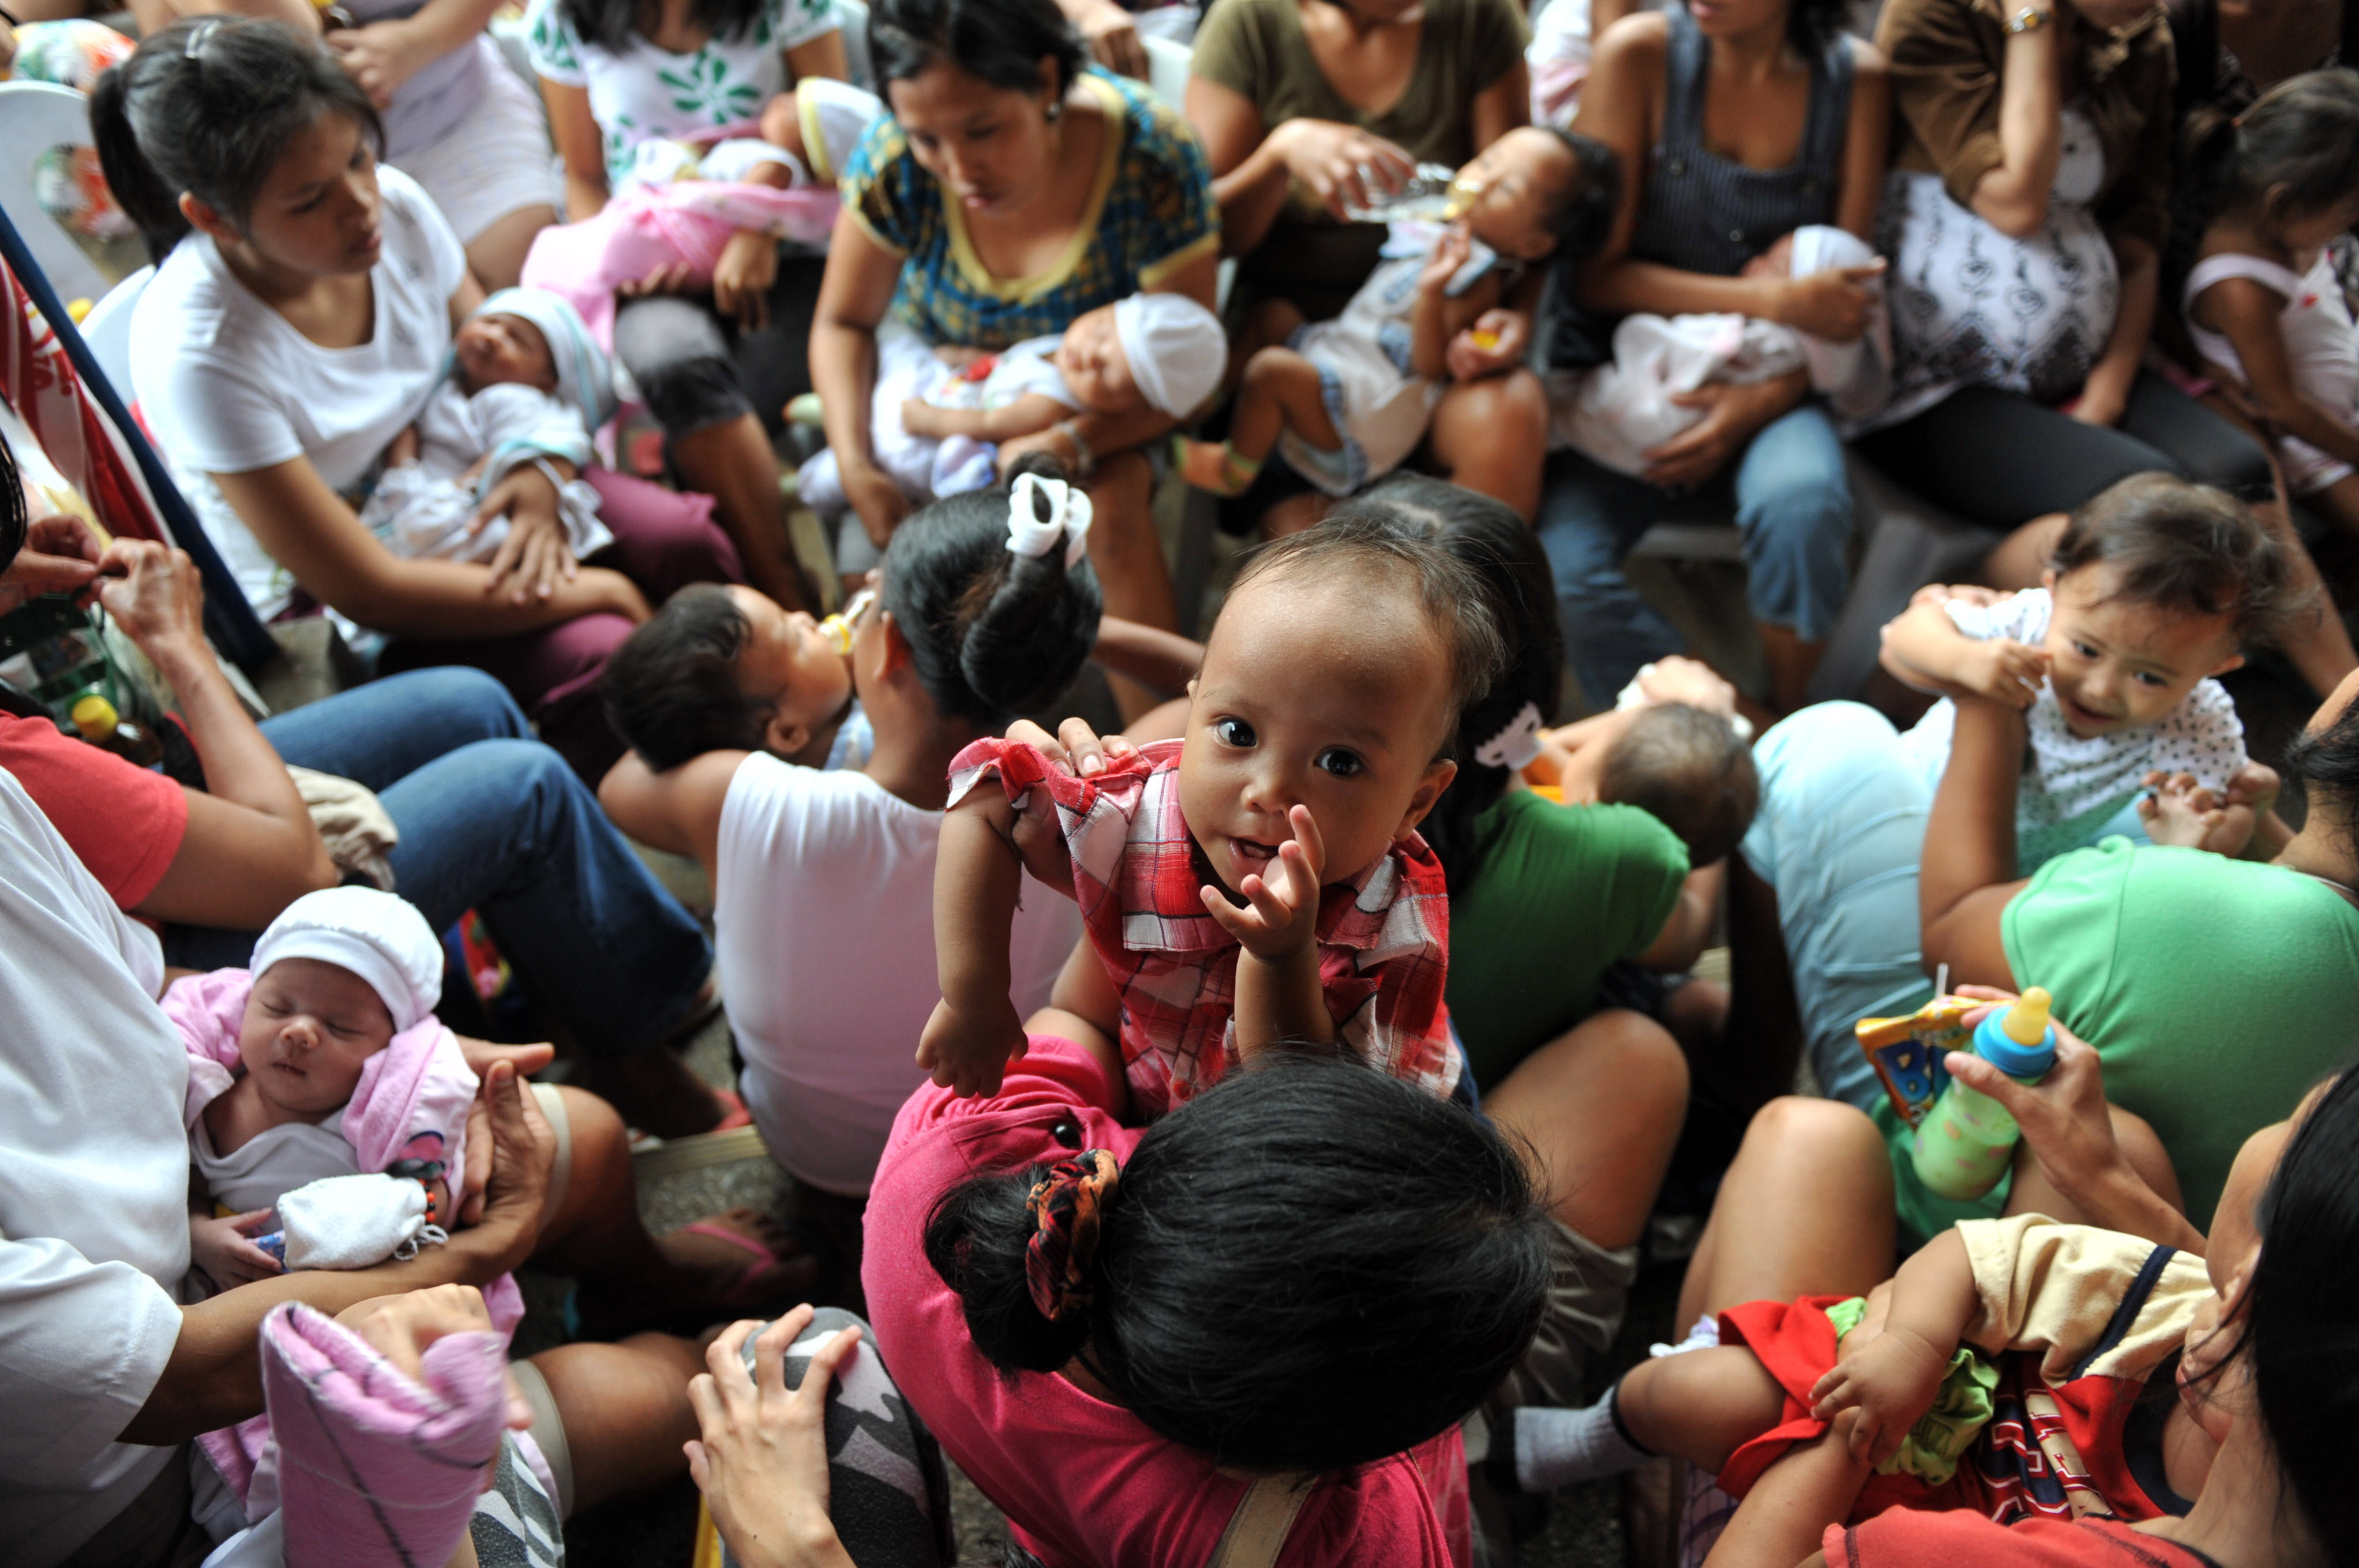 Pregnant women affected by floods wait for a check-up organized by the United Nations Population Fund (UNFPA) in Cainta, Philippines on Oct.8, 2009.